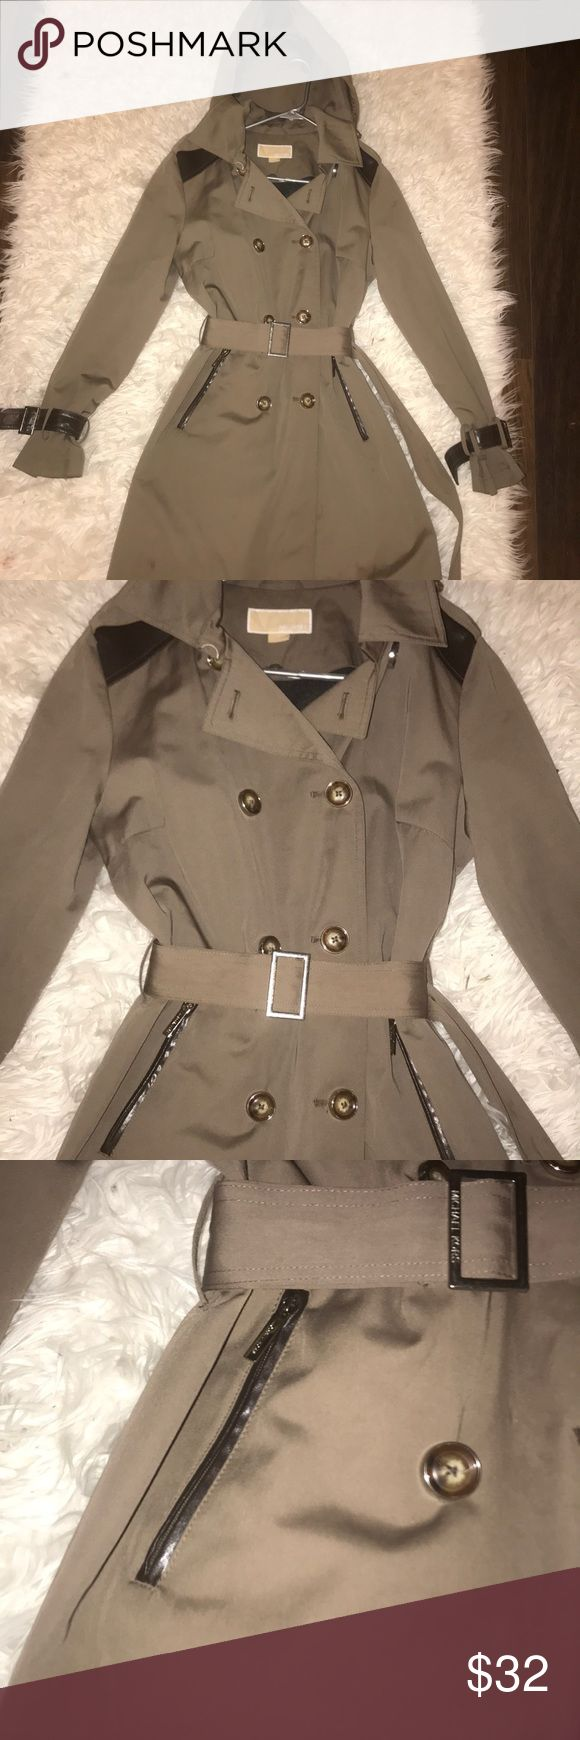 Michael Kors Trench Coat Beautiful Michael Kors taupe/brown Trench Coat Size medium but MK has big sizes Pockets have leather lining Michael Kors Jackets & Coats Trench Coats